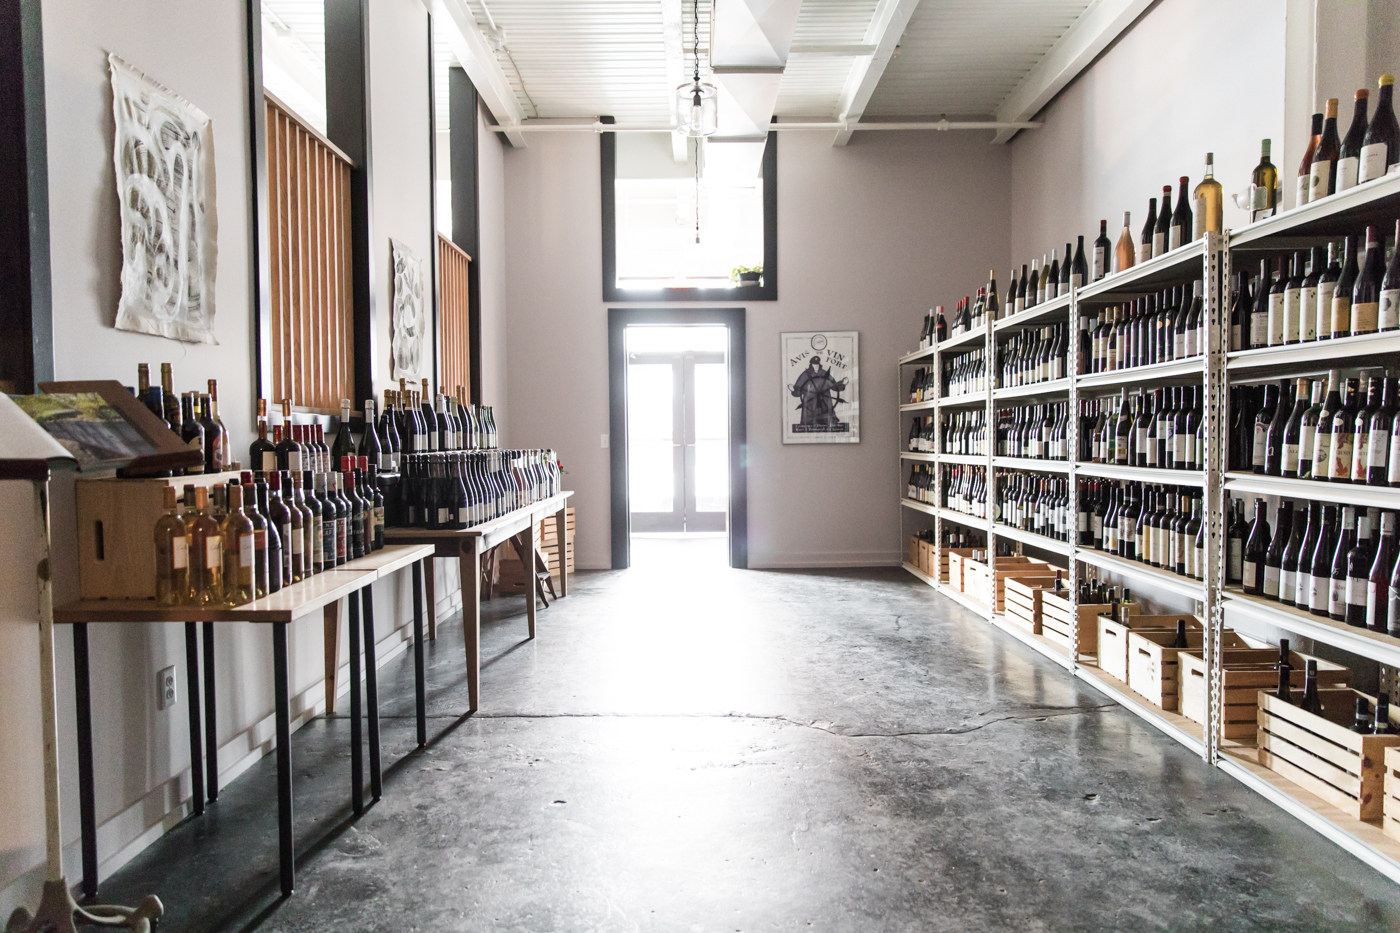 Our retail wine shop, Maine & Loire - The shop is located inside Drifters Wife and is now open 7 days a week!